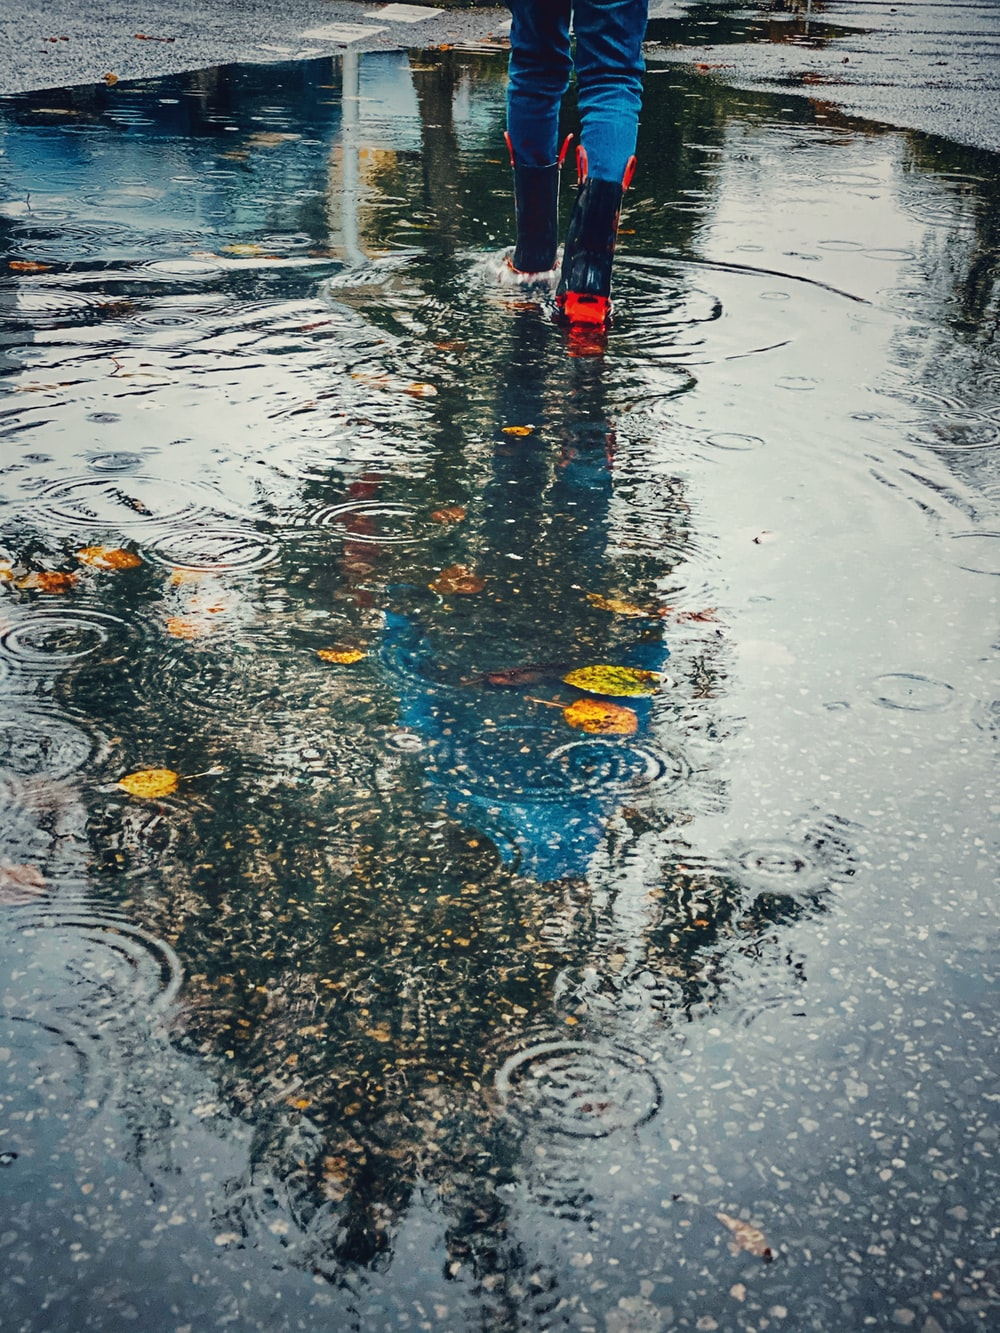 person wearing pair of red-and-black rain boots walking towards water puddle